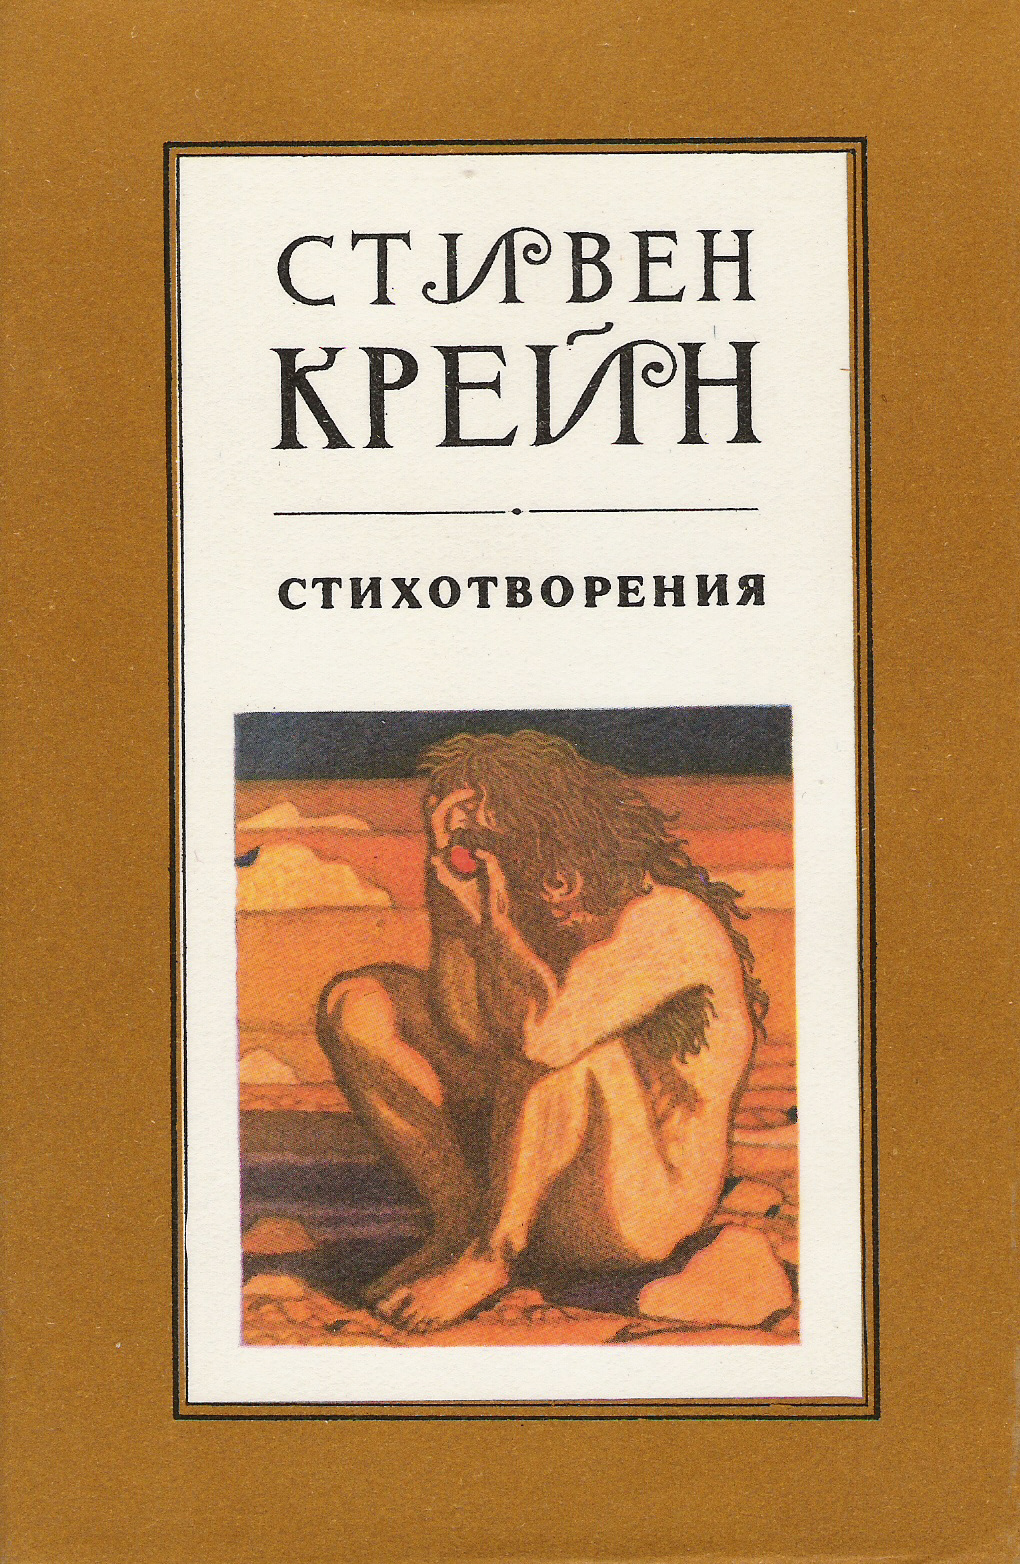 Stepehen Crane. Collected Poems. Cover